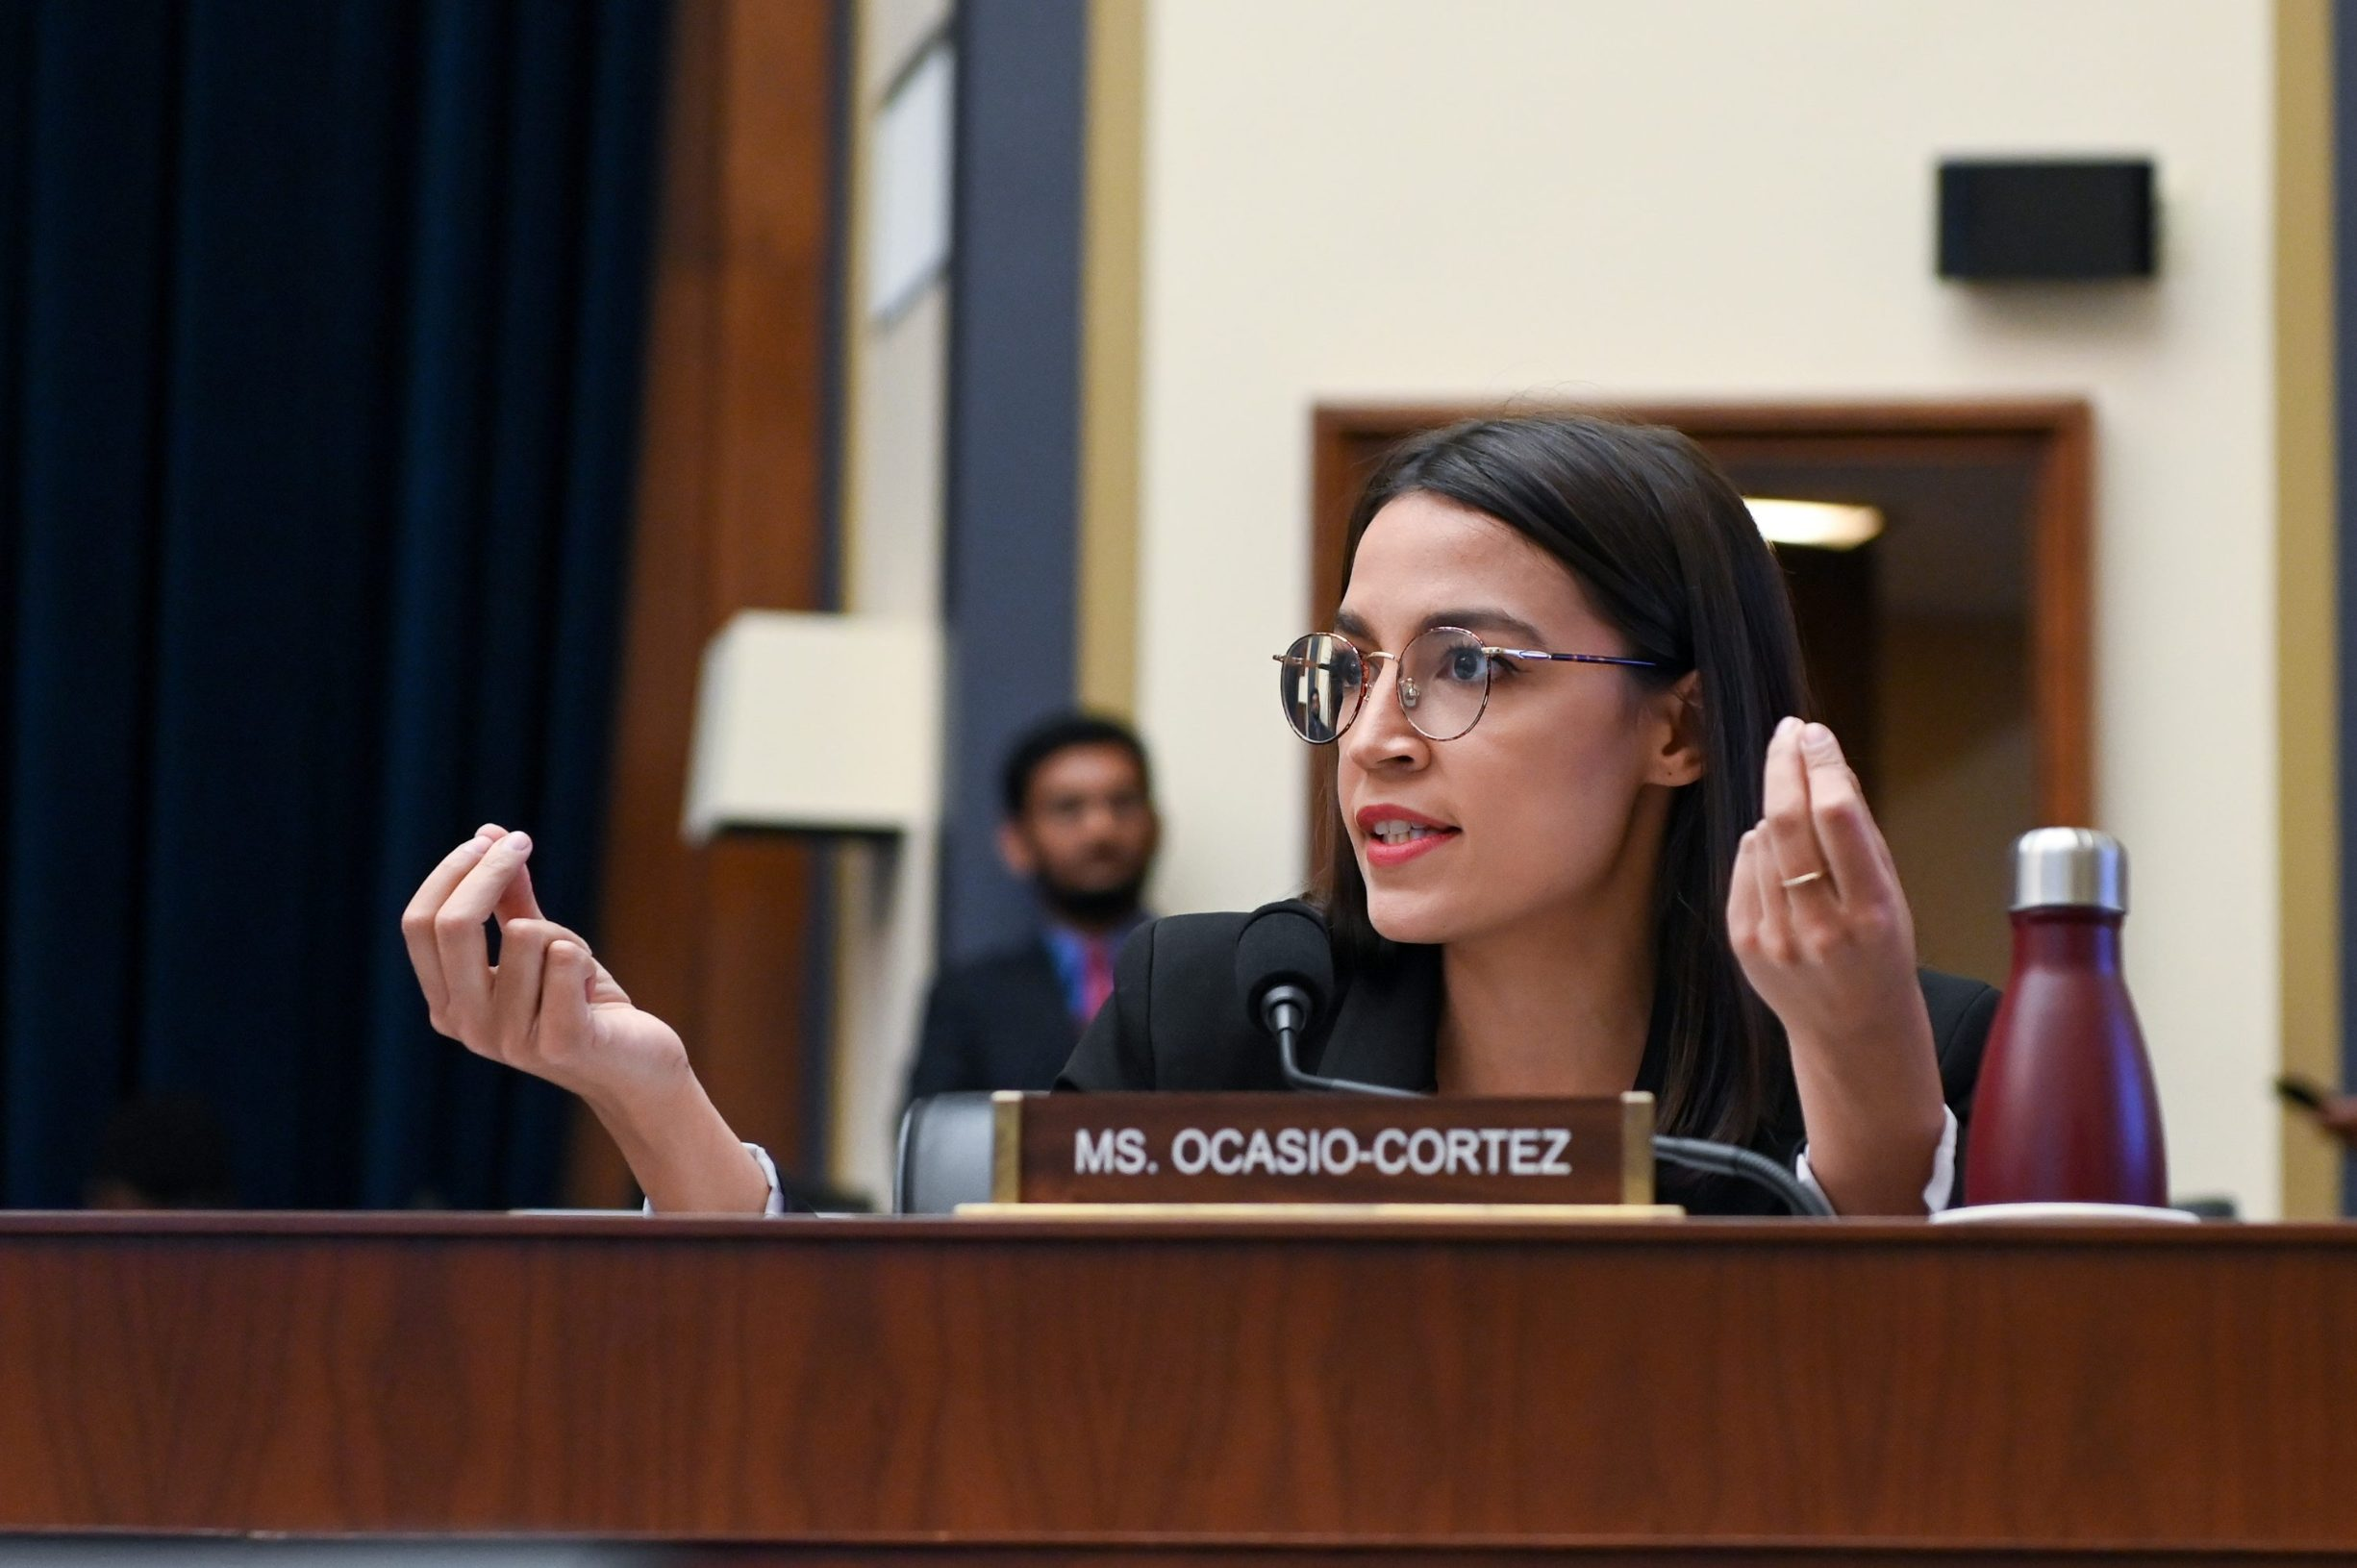 Rep. Alexandria Ocasio-Cortez (D-NY) participates in a House Financial Services Committee hearing with Facebook Chairman and CEO Mark Zuckerberg in Washington, U.S., October 23, 2019. REUTERS/Erin Scott